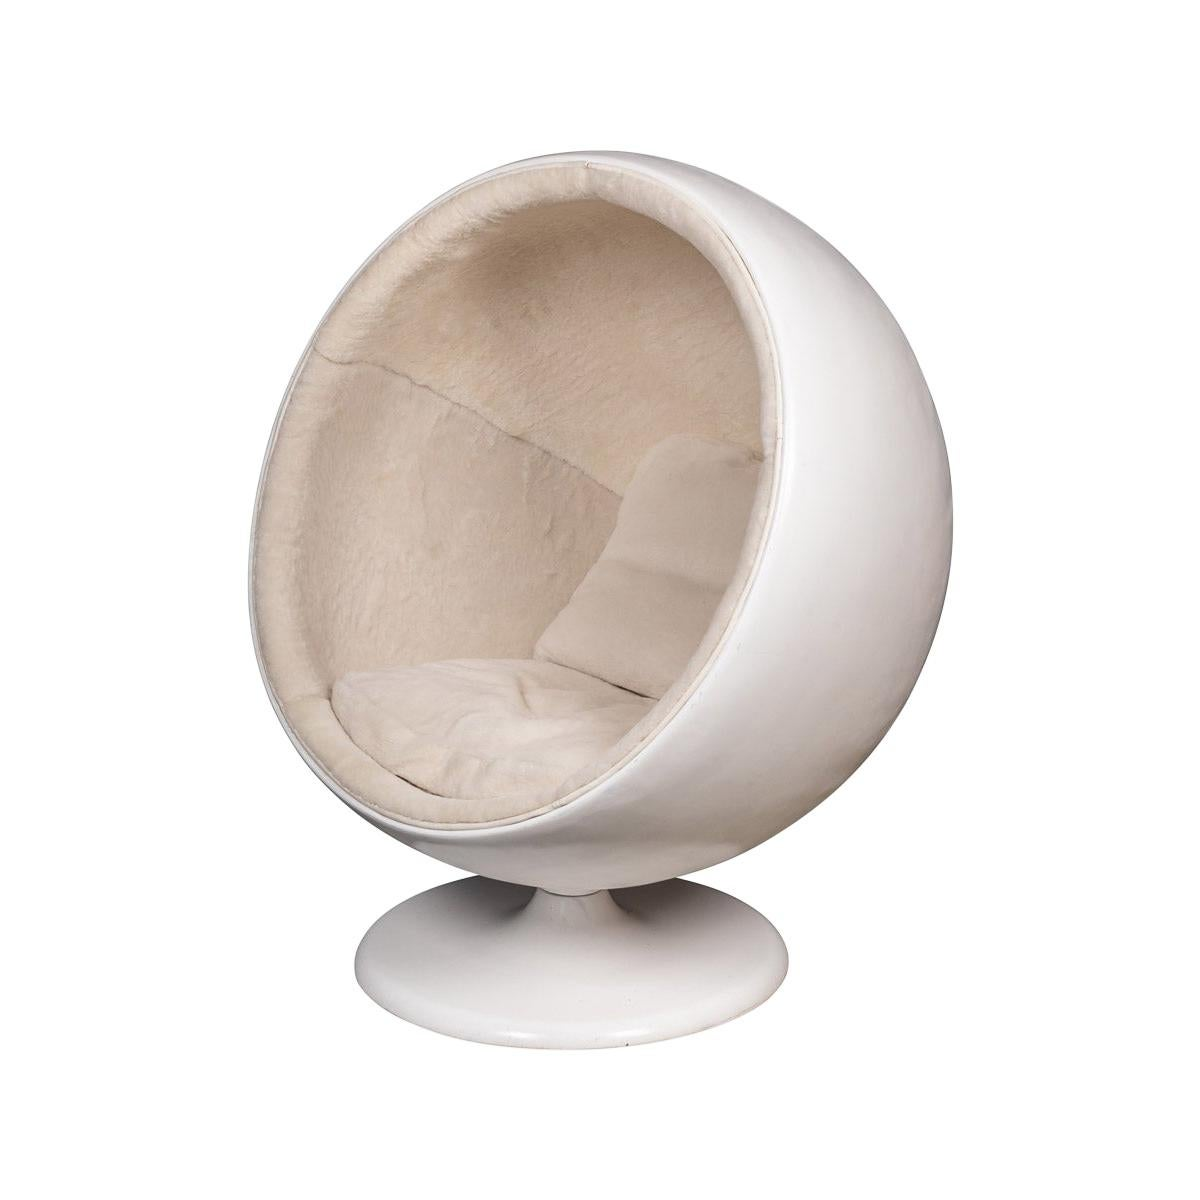 20th Century Retro Ball Chair in the Style of Eero Aarnio for Asko, C.1960